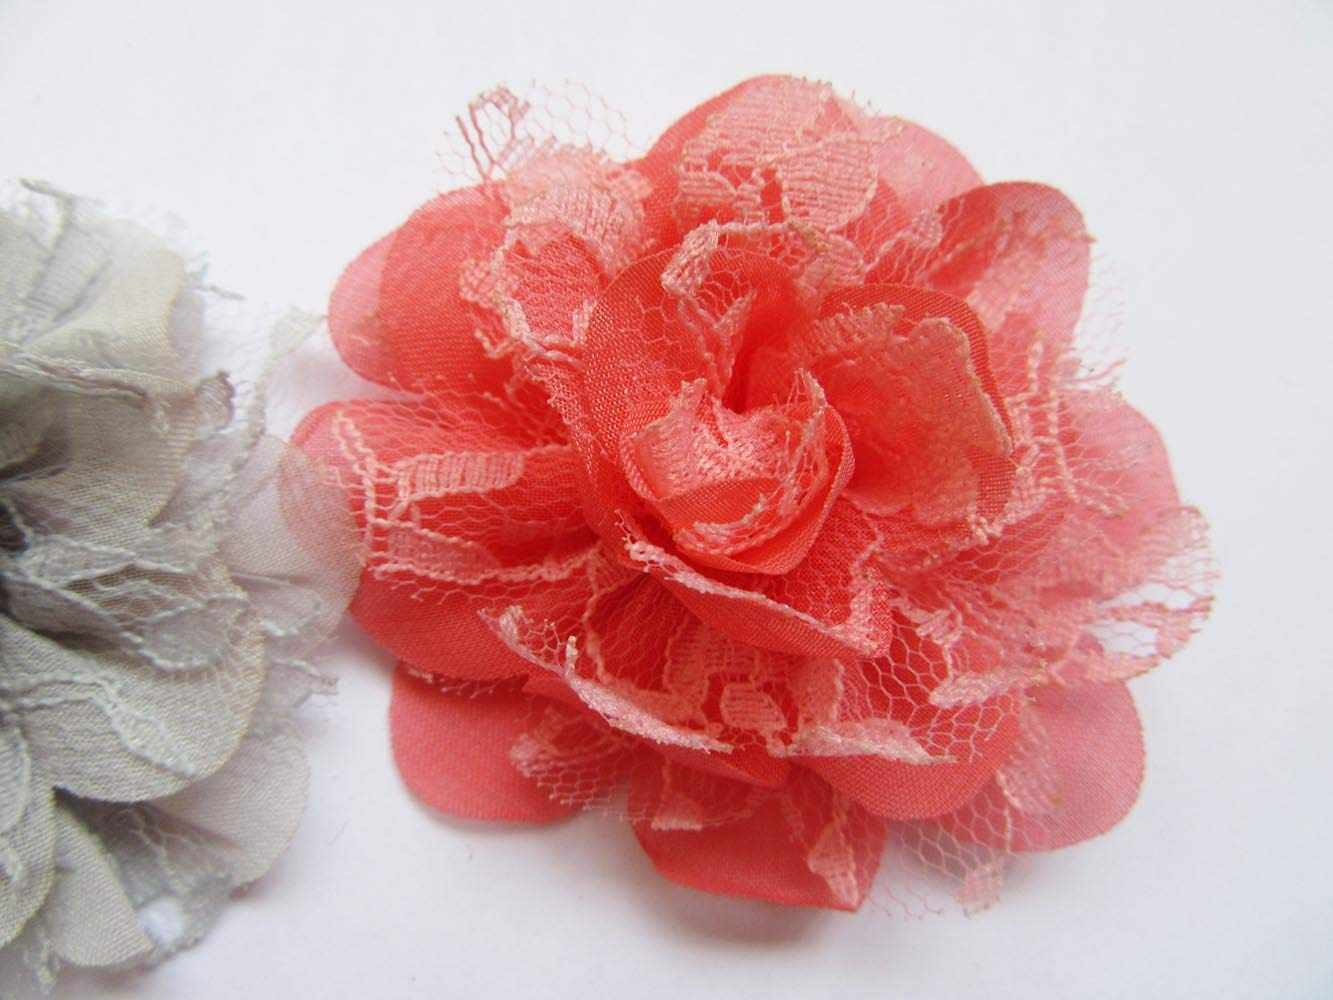 b/éb/é fille Bandeau Cheveux n/œuds Craft 14pcs 2.5 Chiffon Lace Flower 2.5 Yycraft Fleur en mousseline pour Ornements de couture